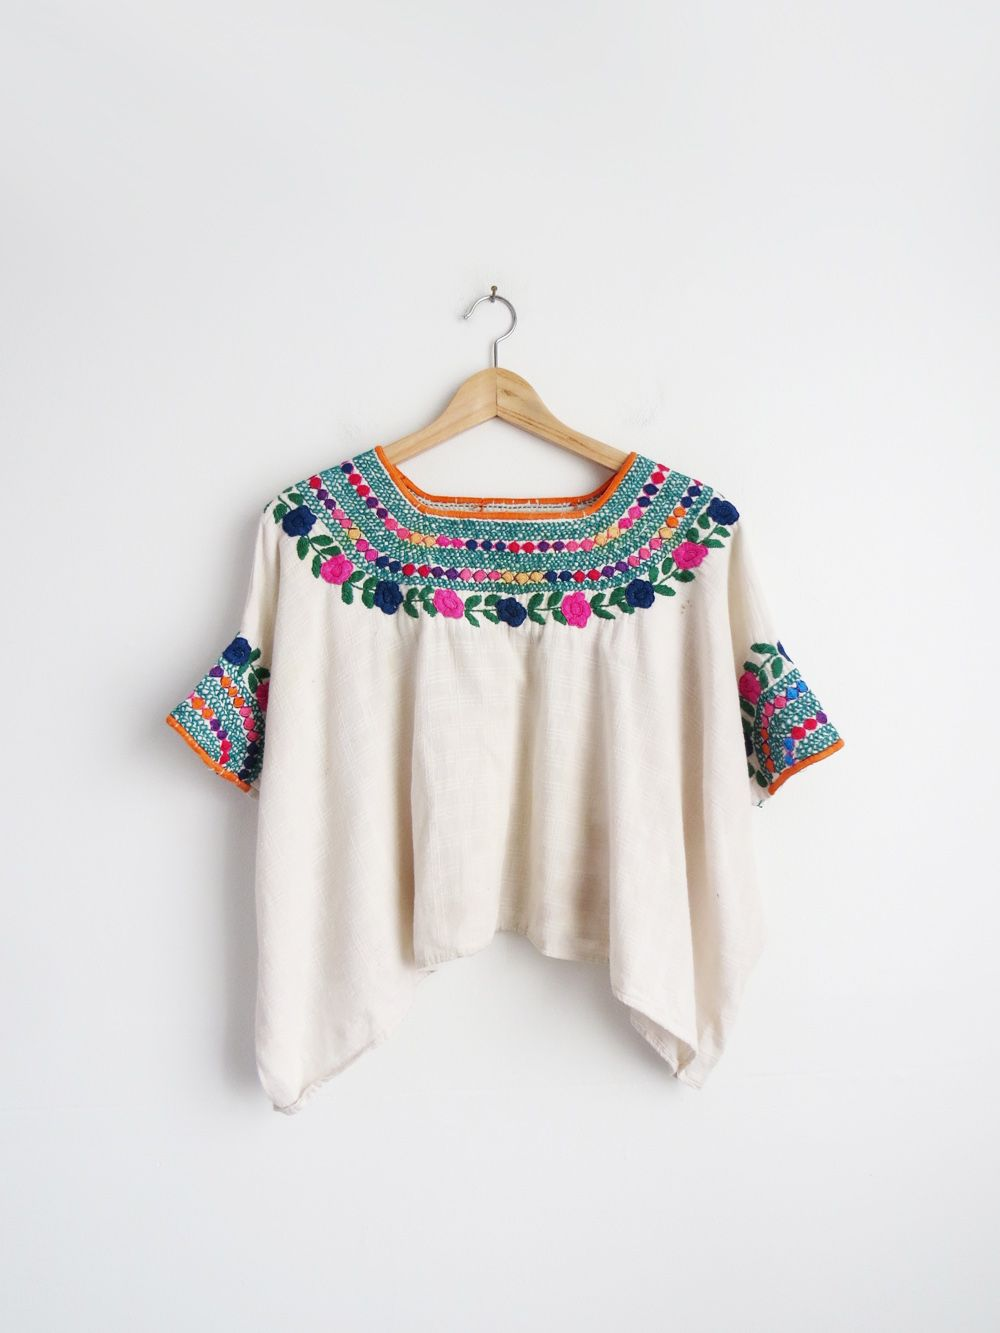 b8cbd95f0 Antigua Cotton Huipil // Guatemalan Vintage Huipil | Happies ...